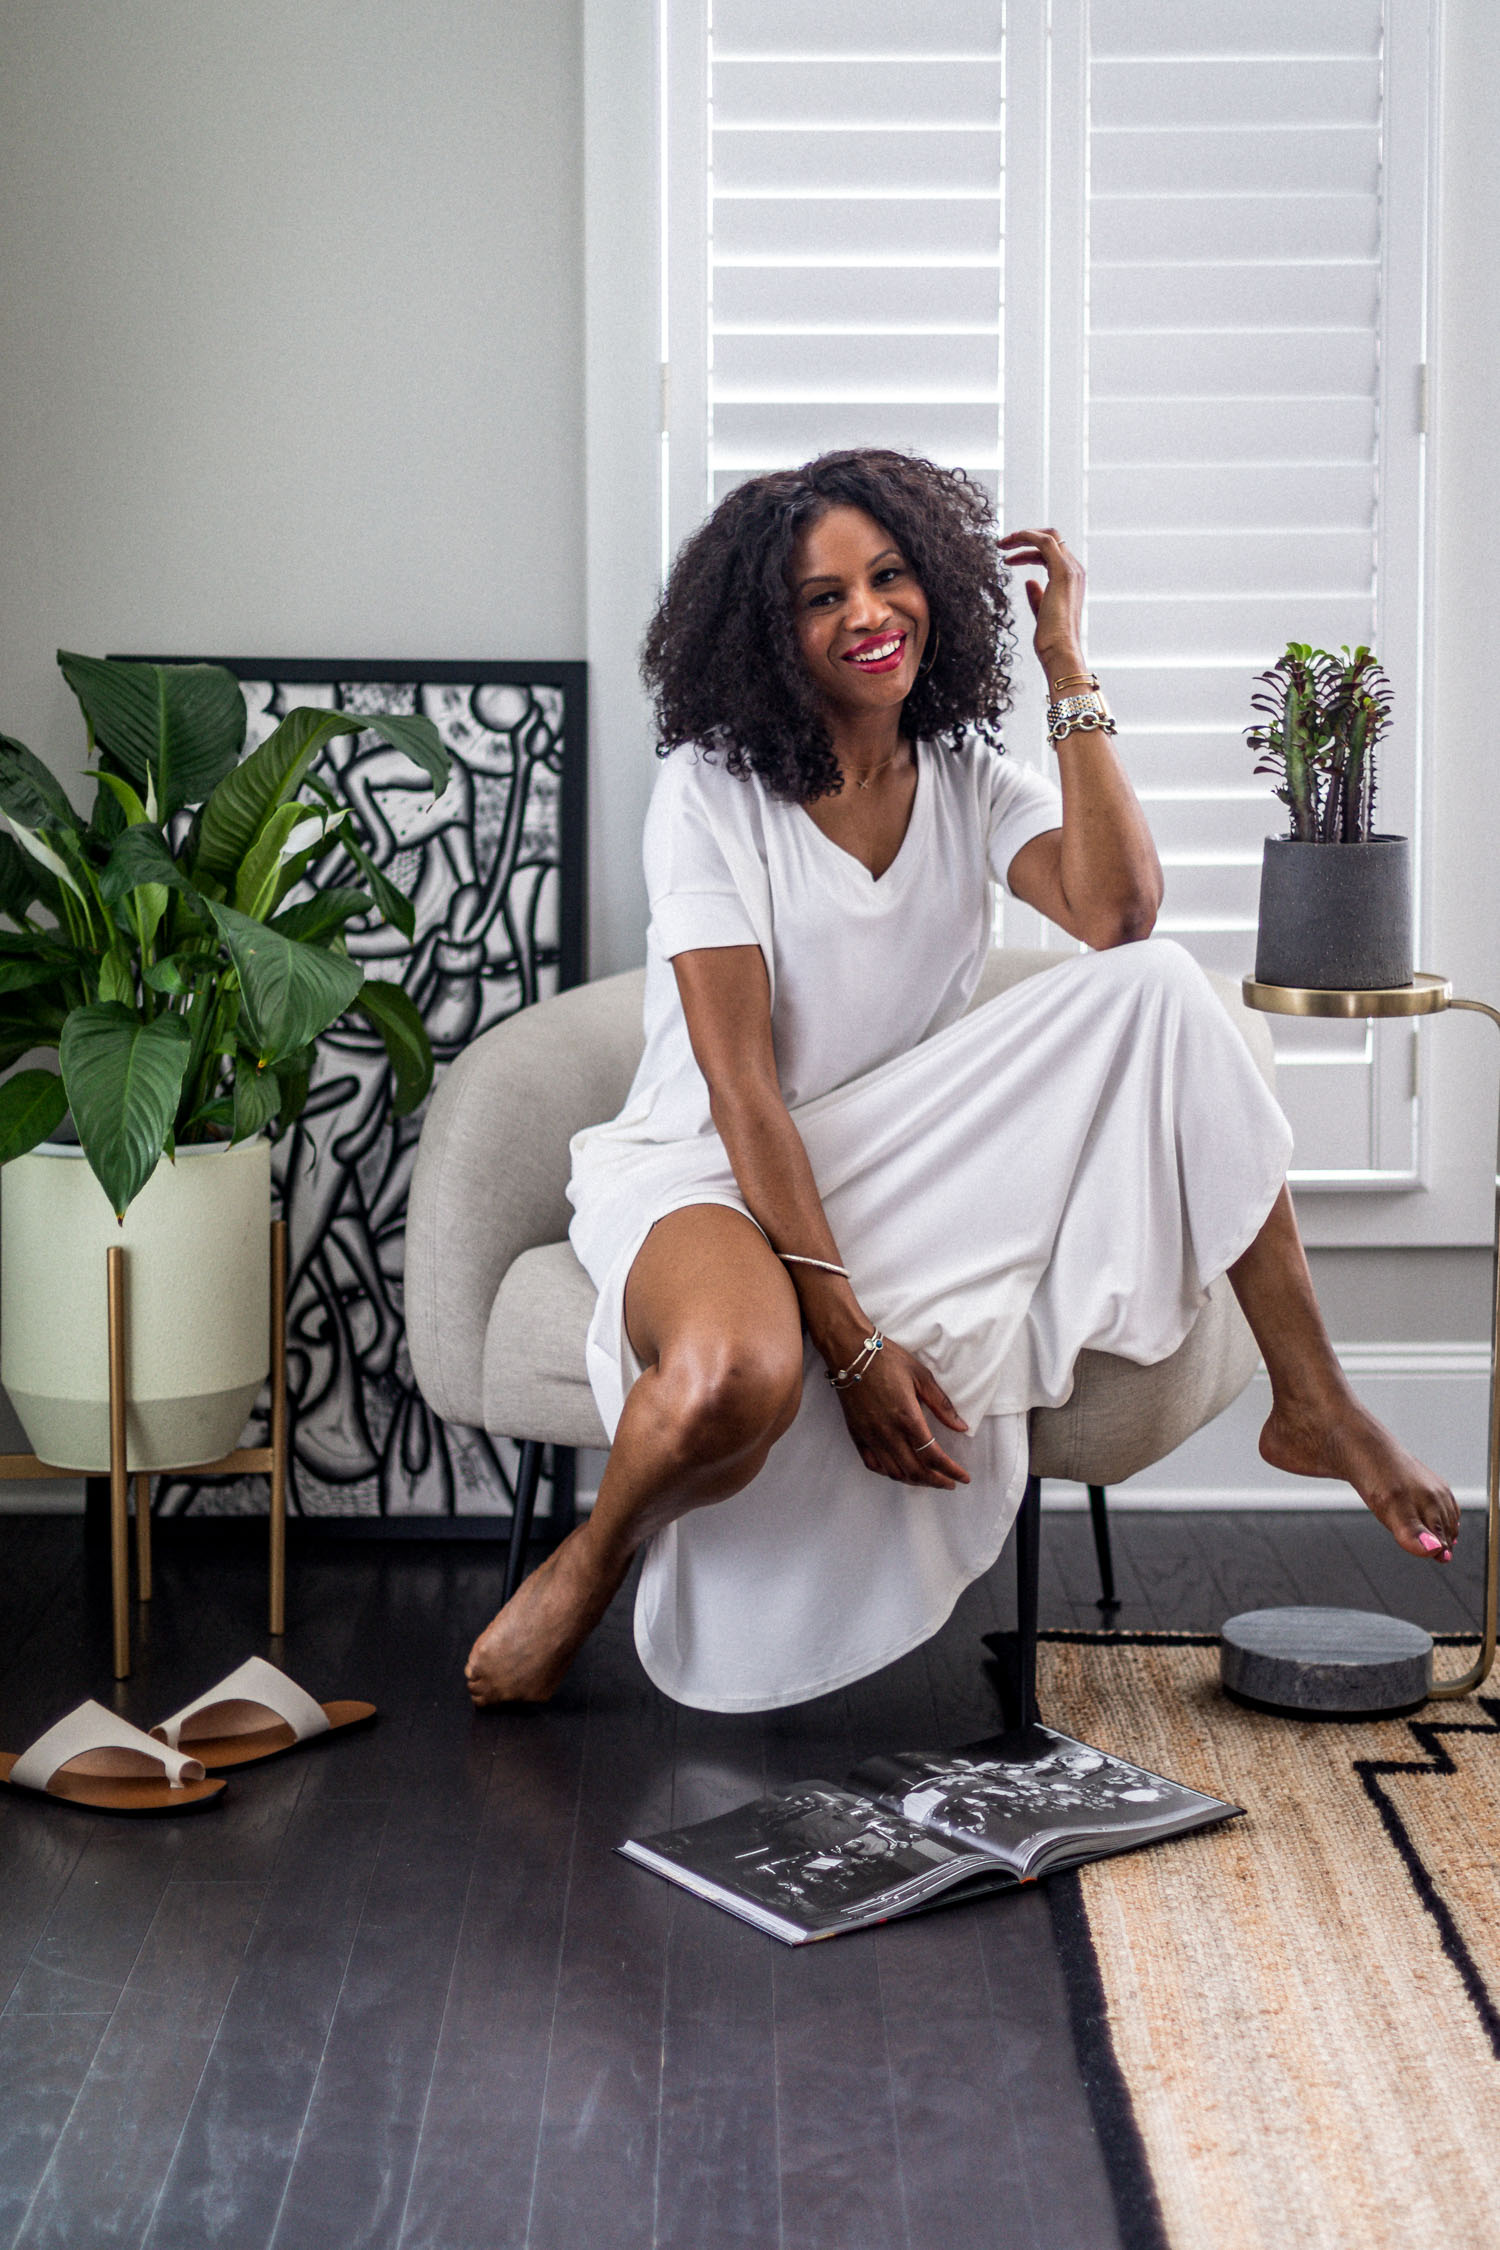 atlanta fashion blogger wearing loungewear dresses for summer, how to style your loungewear, how to style a loungewear dress, loungewear, how to look cute in loungewear, the best loungewear to wear at home, wrap dress, outfit inspiration, loungewear outfit inspiration, white loungewear dress, white dress, how to style a white dress, best white dress for summer